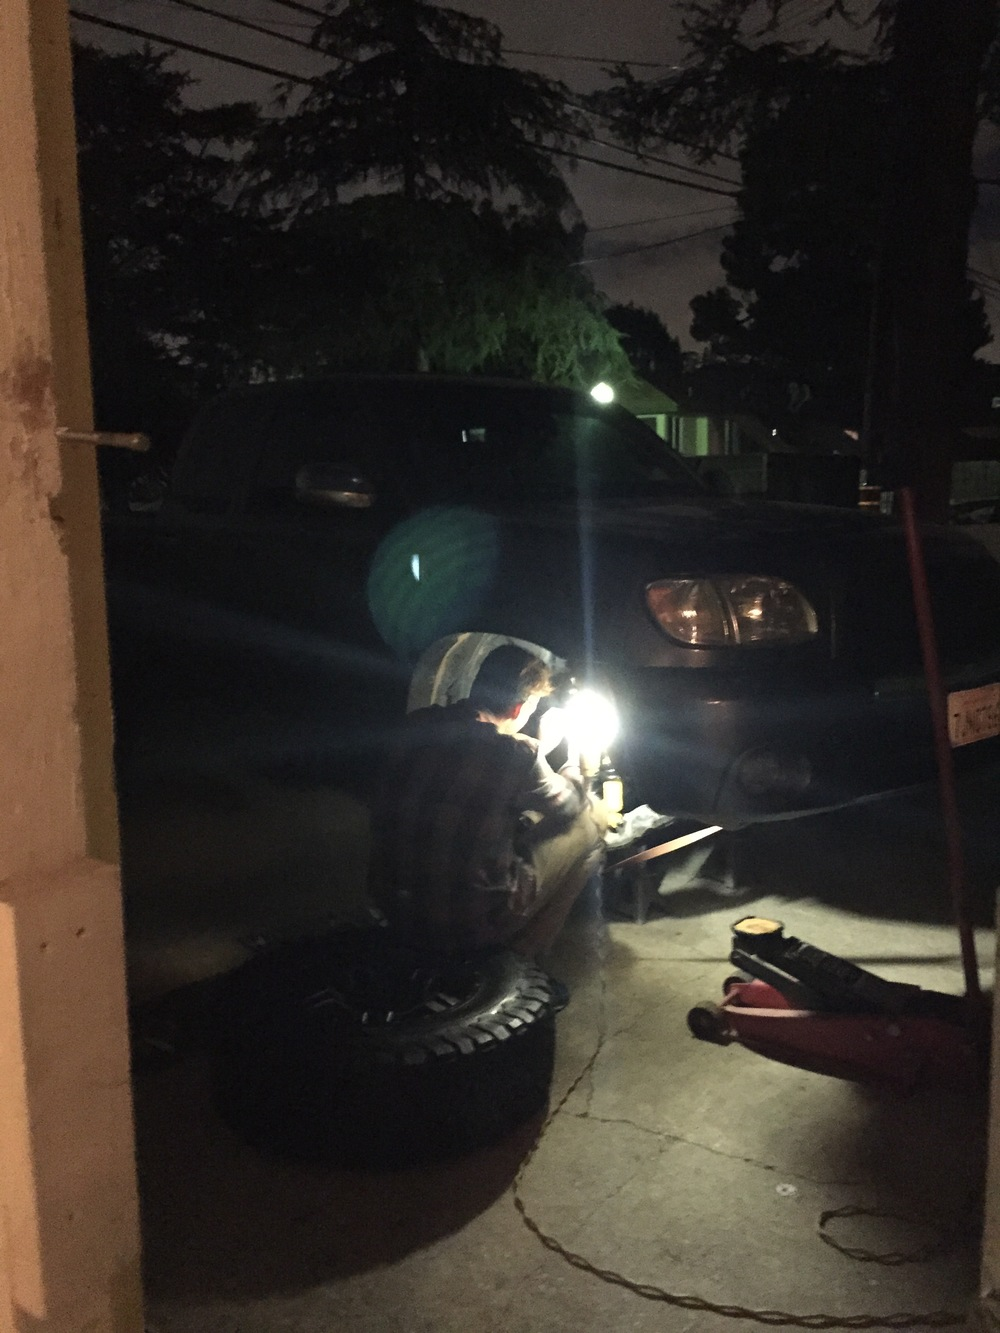 Midnight, the suspension giving us troubles, attempting to get the tire on before the rain came.